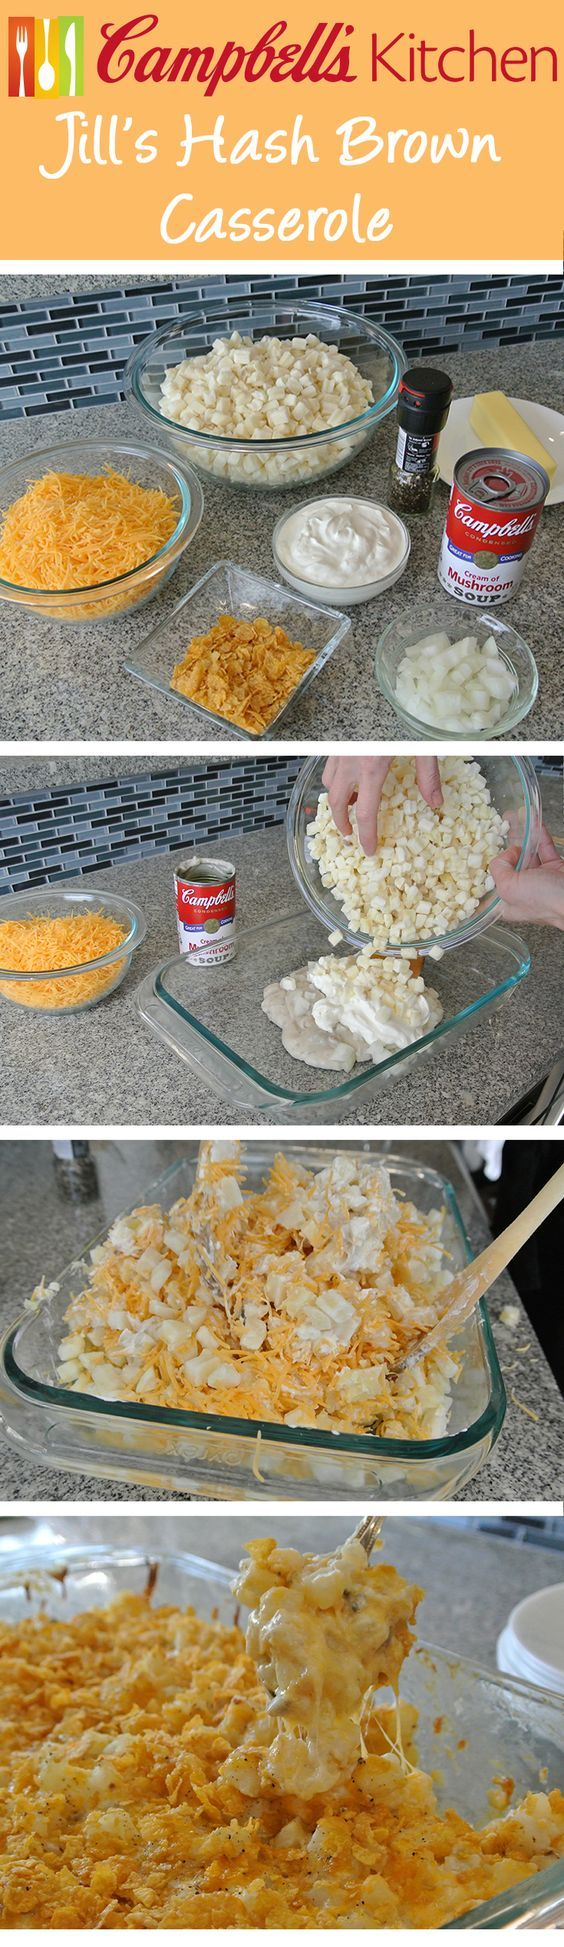 Jill's Hash Brown Casserole Recipe - Perfect for brunch or breakfast!---Campbell's actual recipe calls for 2 cans of Campbell Condensed Cream of Potato soup instead of the mushroom.